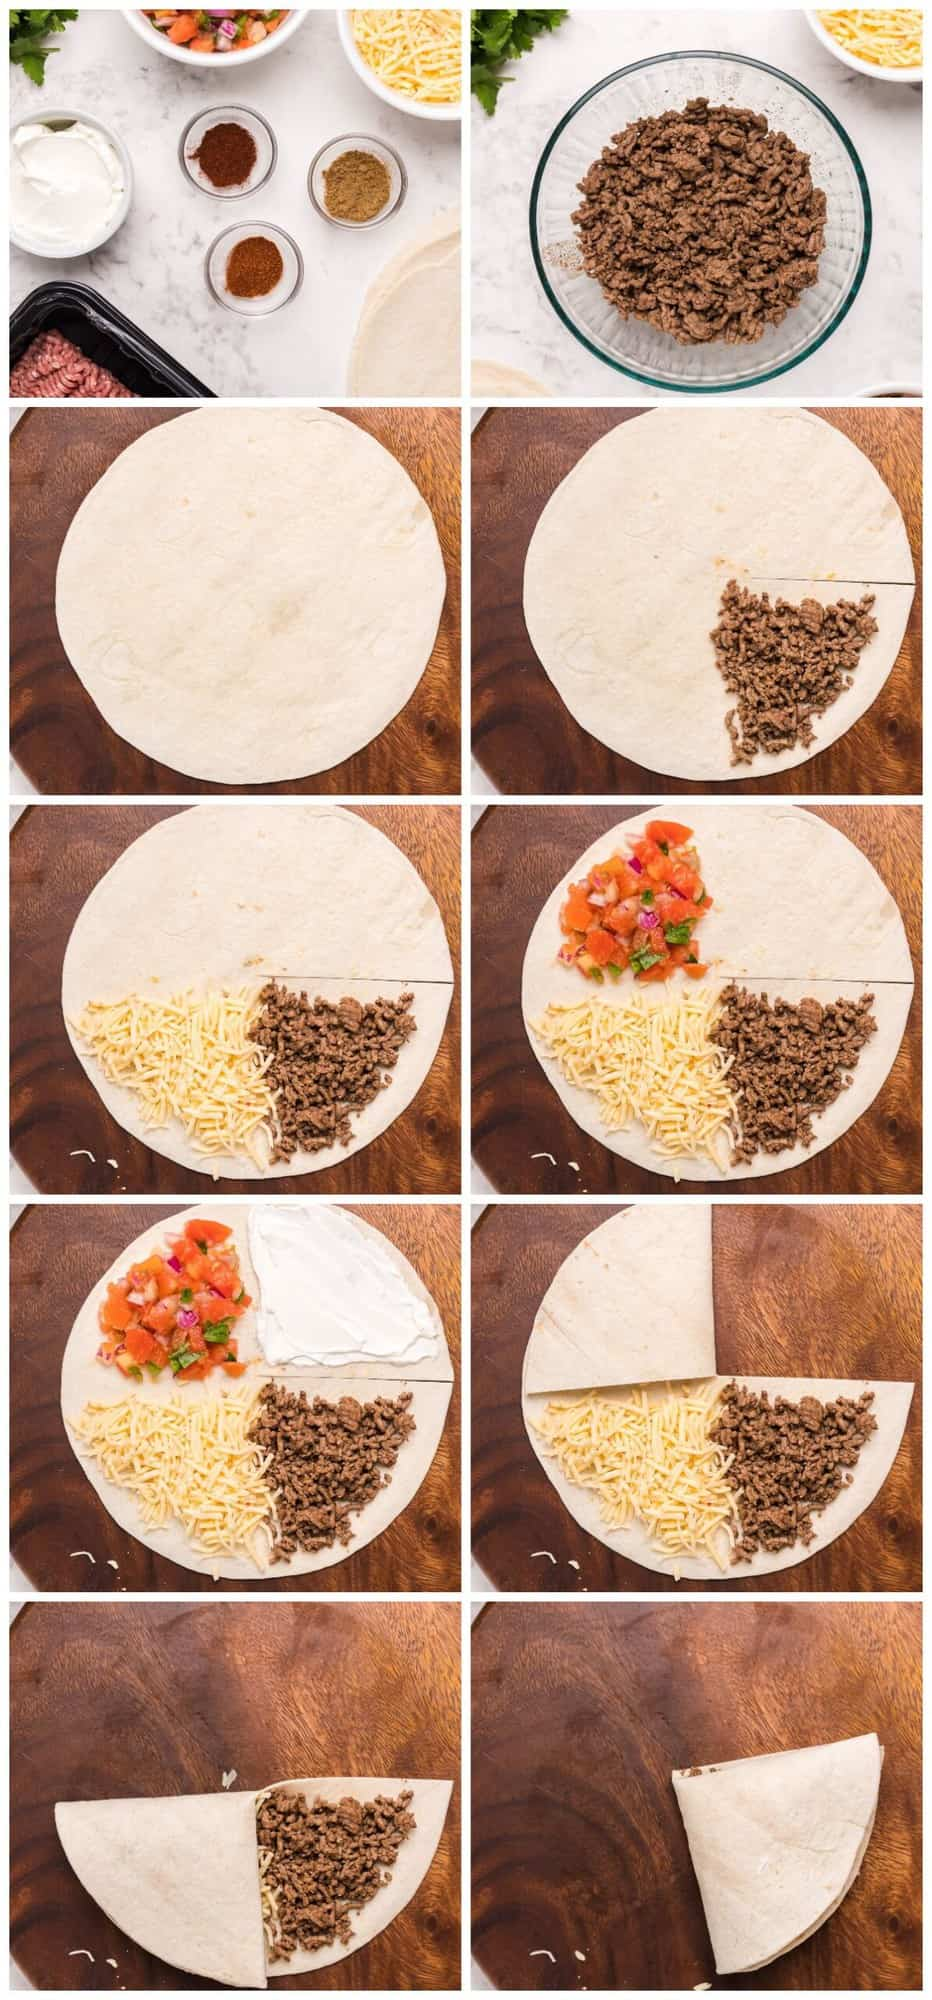 step by step photos for how to make foldover quesadillas, the viral tik tok recipe